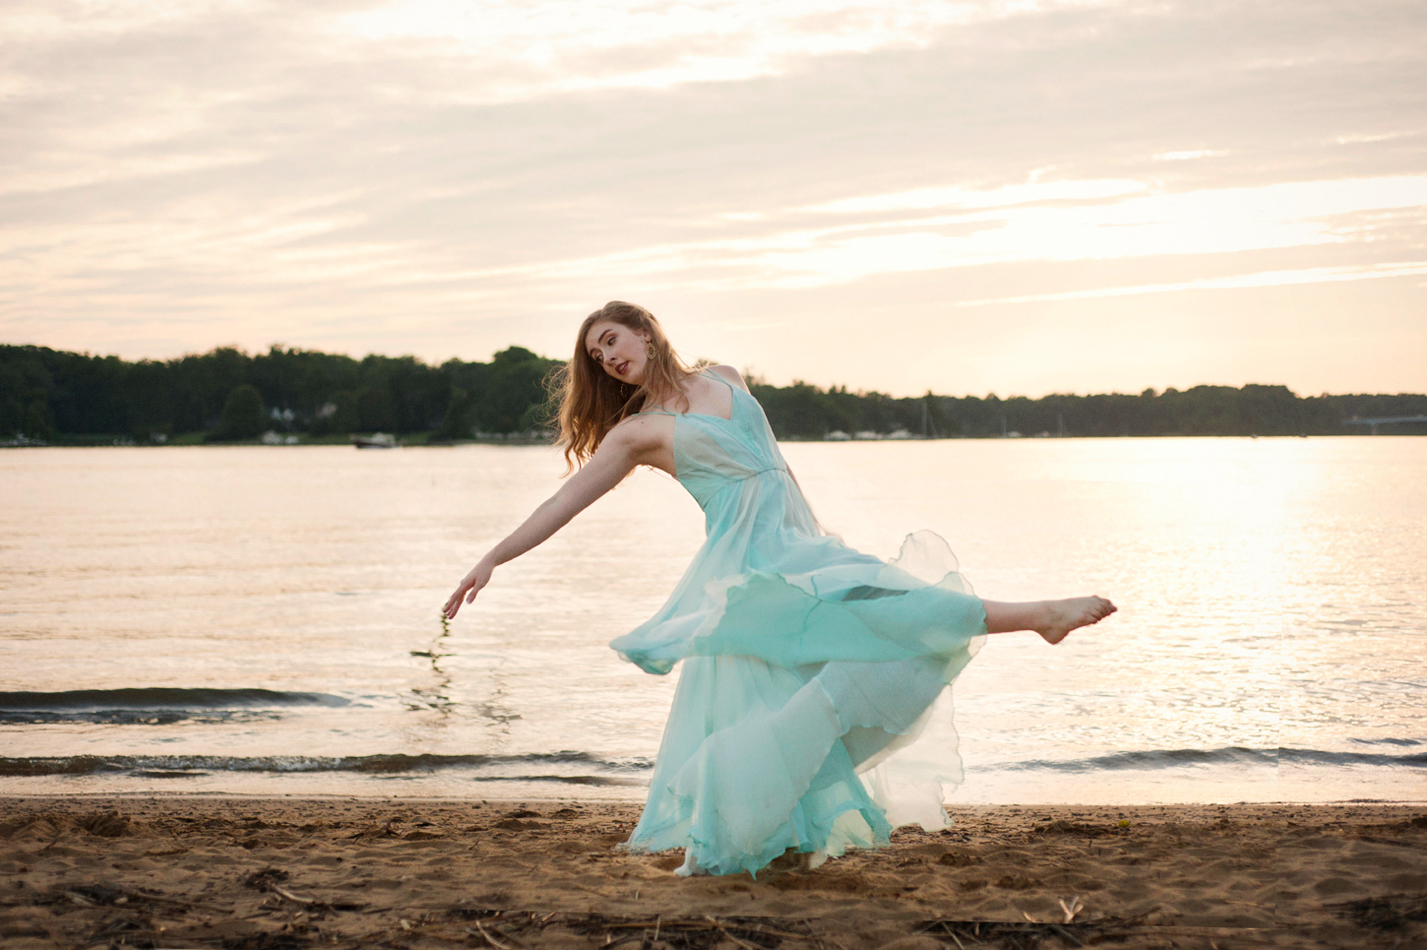 senior picture of girl on beach dancing